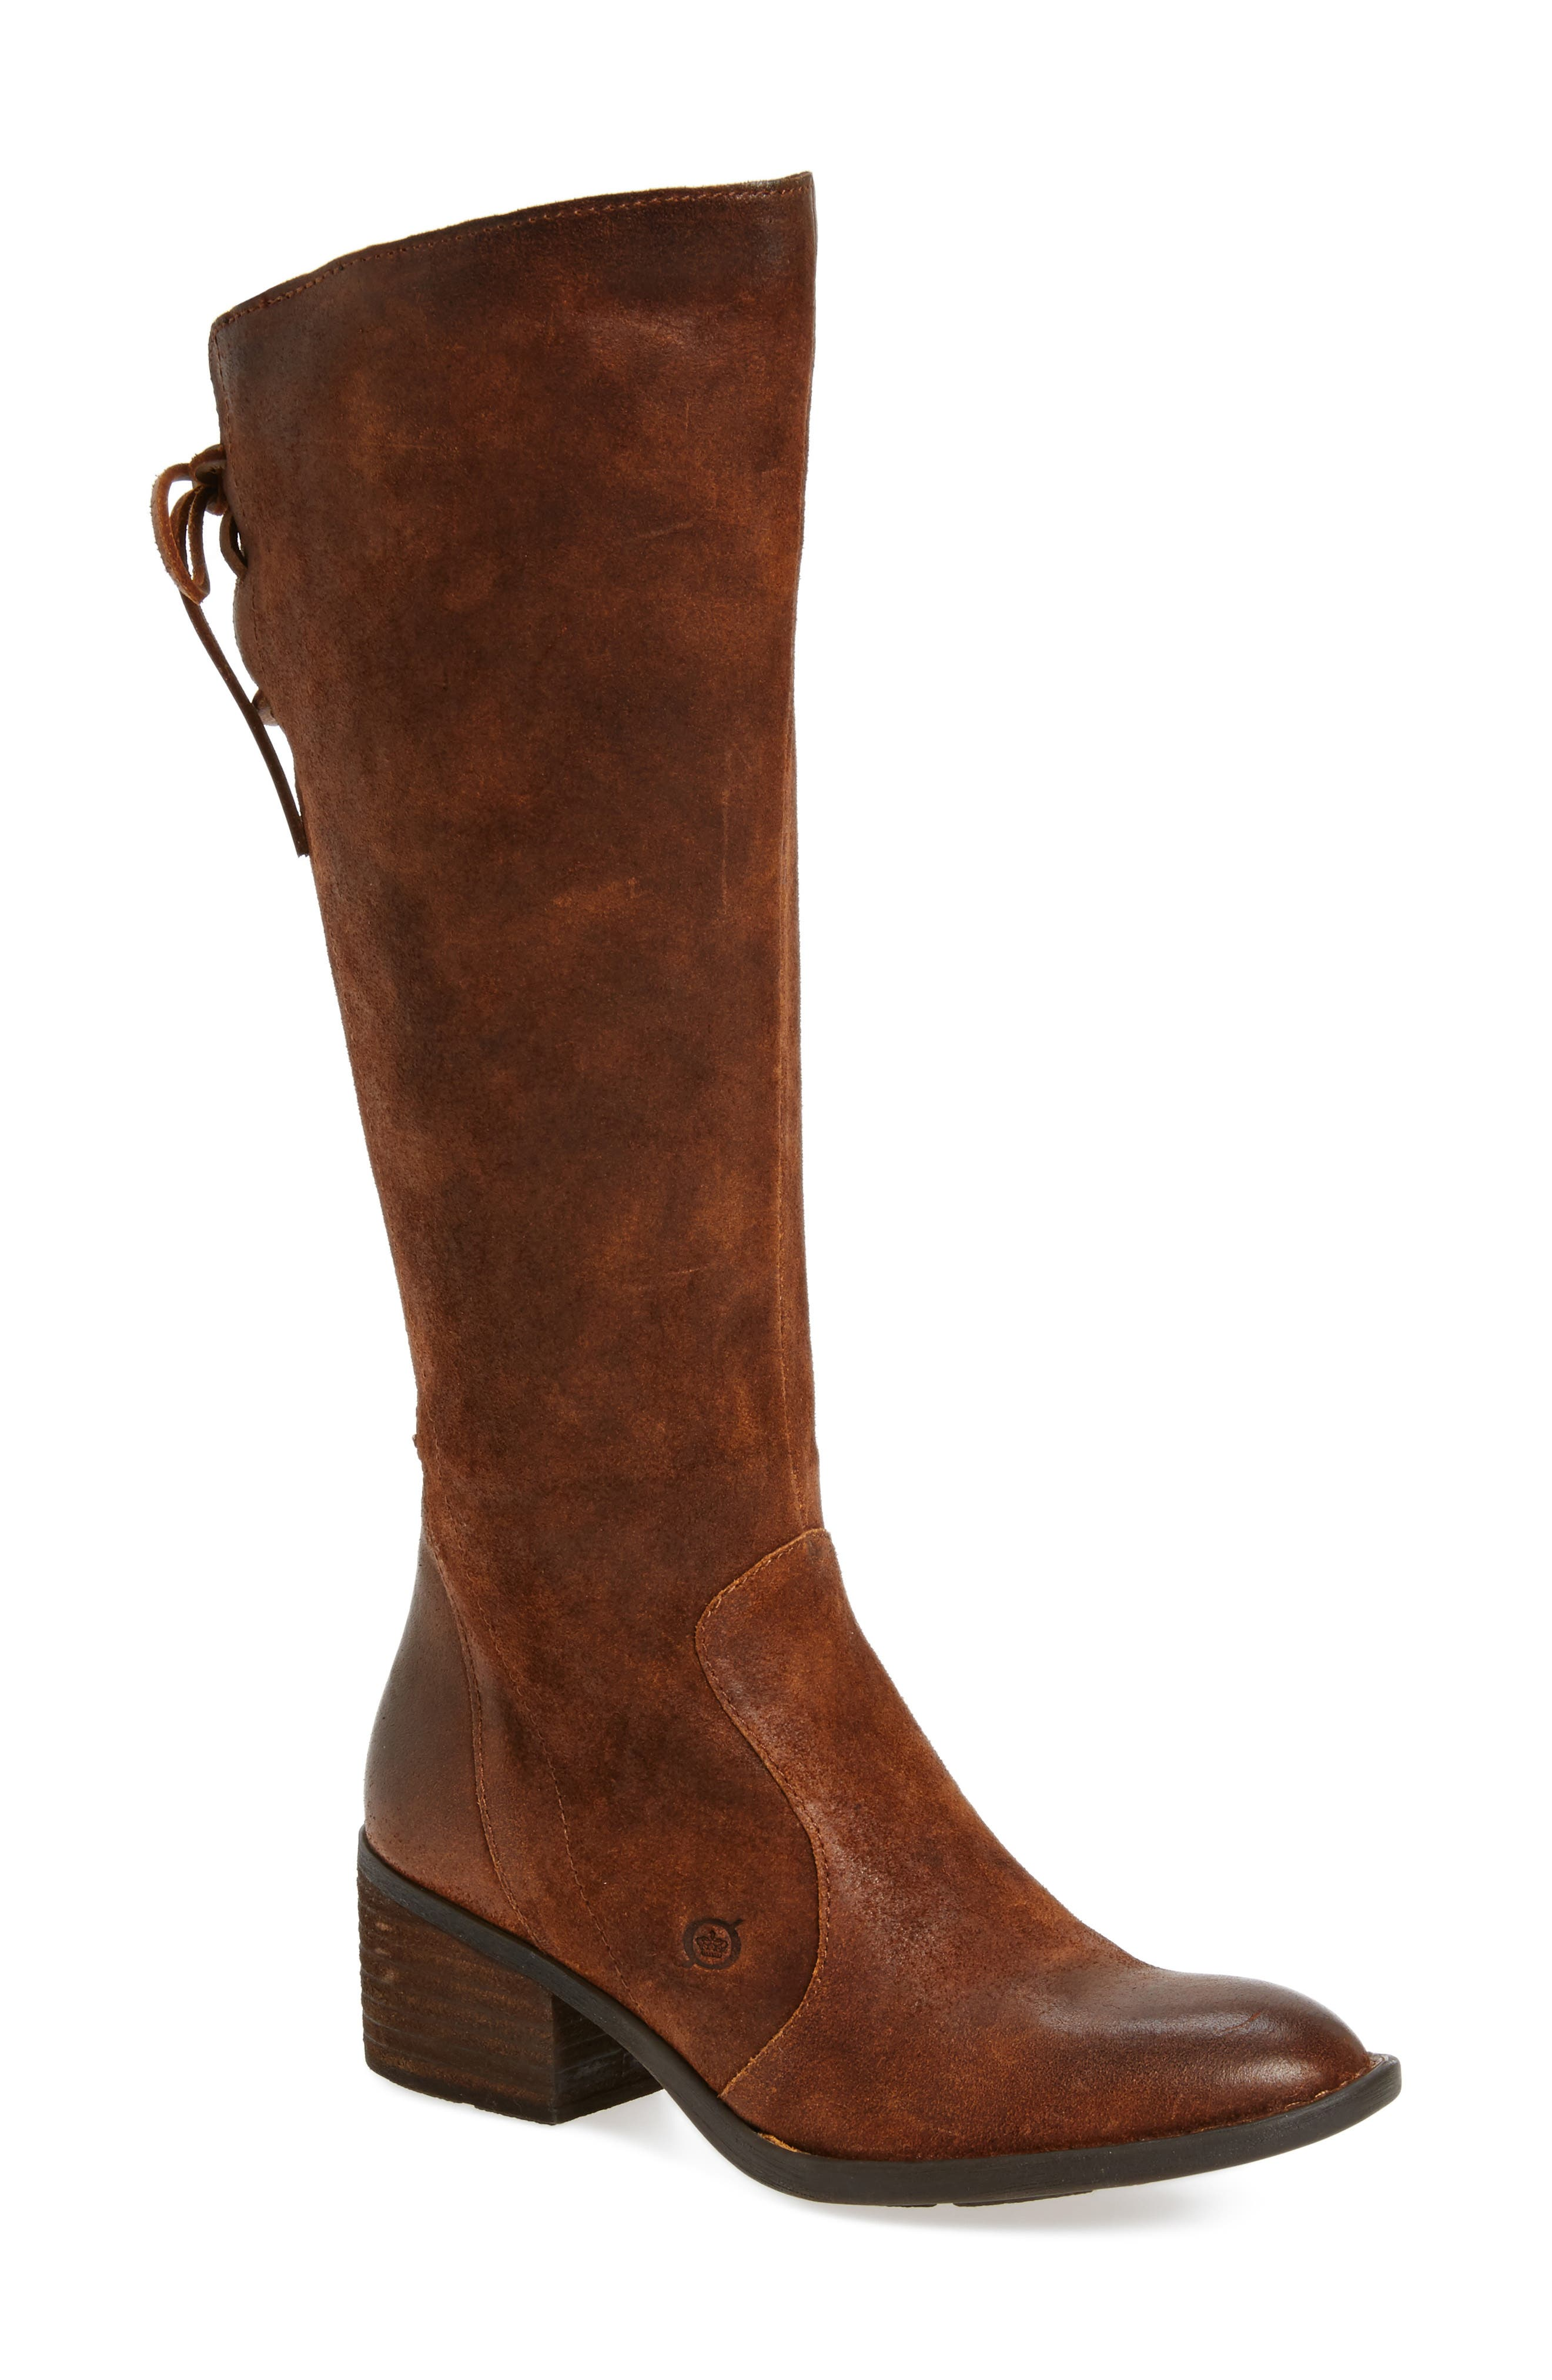 Felicia Knee High Boot,                             Main thumbnail 1, color,                             Rust Distressed Leather